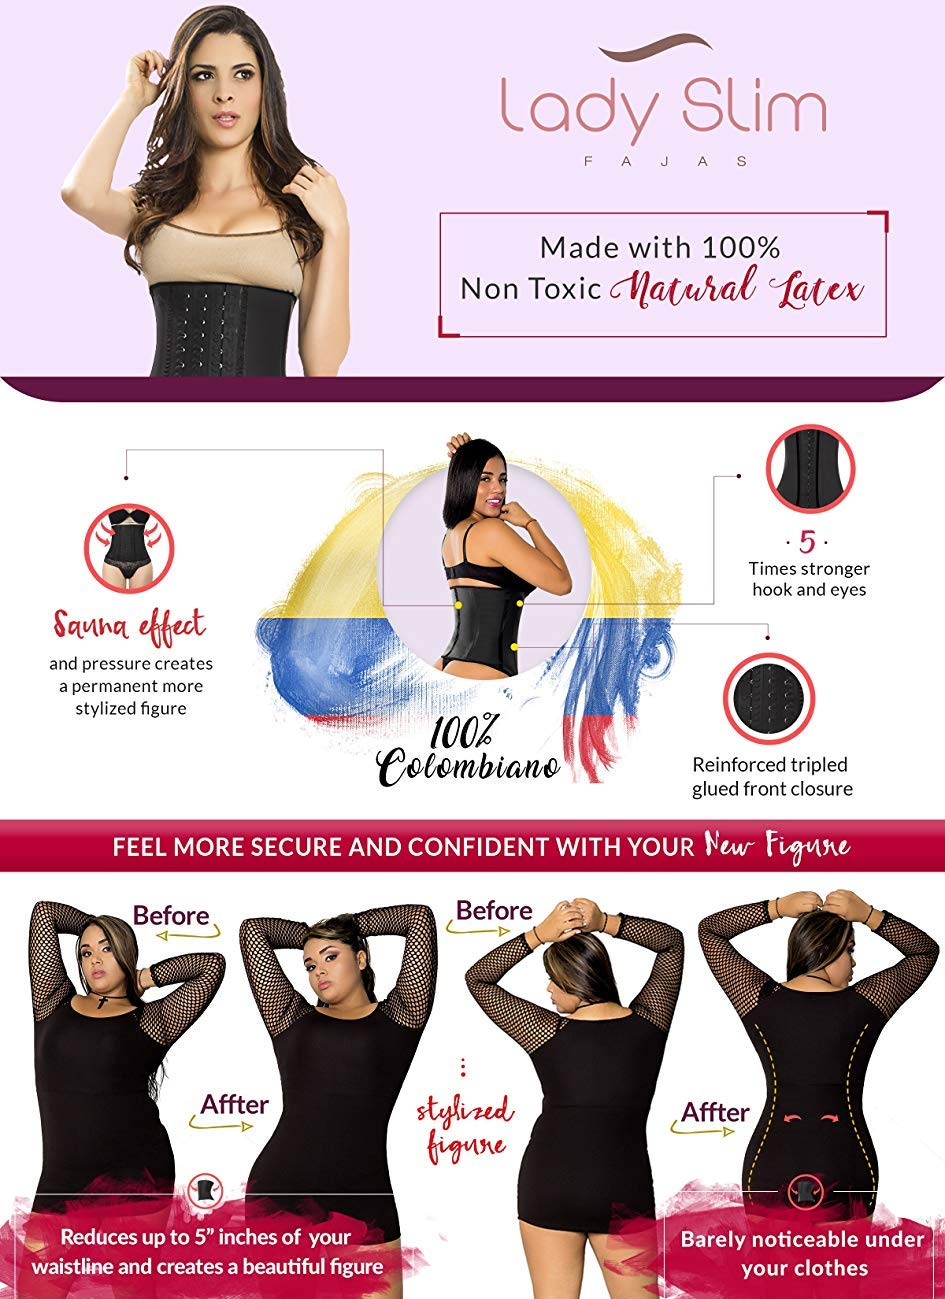 af1caa300c7 LADY SLIM Fajas Colombiana Latex Waist Cincher Trainer Trimmer Corset  Weight Loss Shaper   Waist Cinchers   Clothing